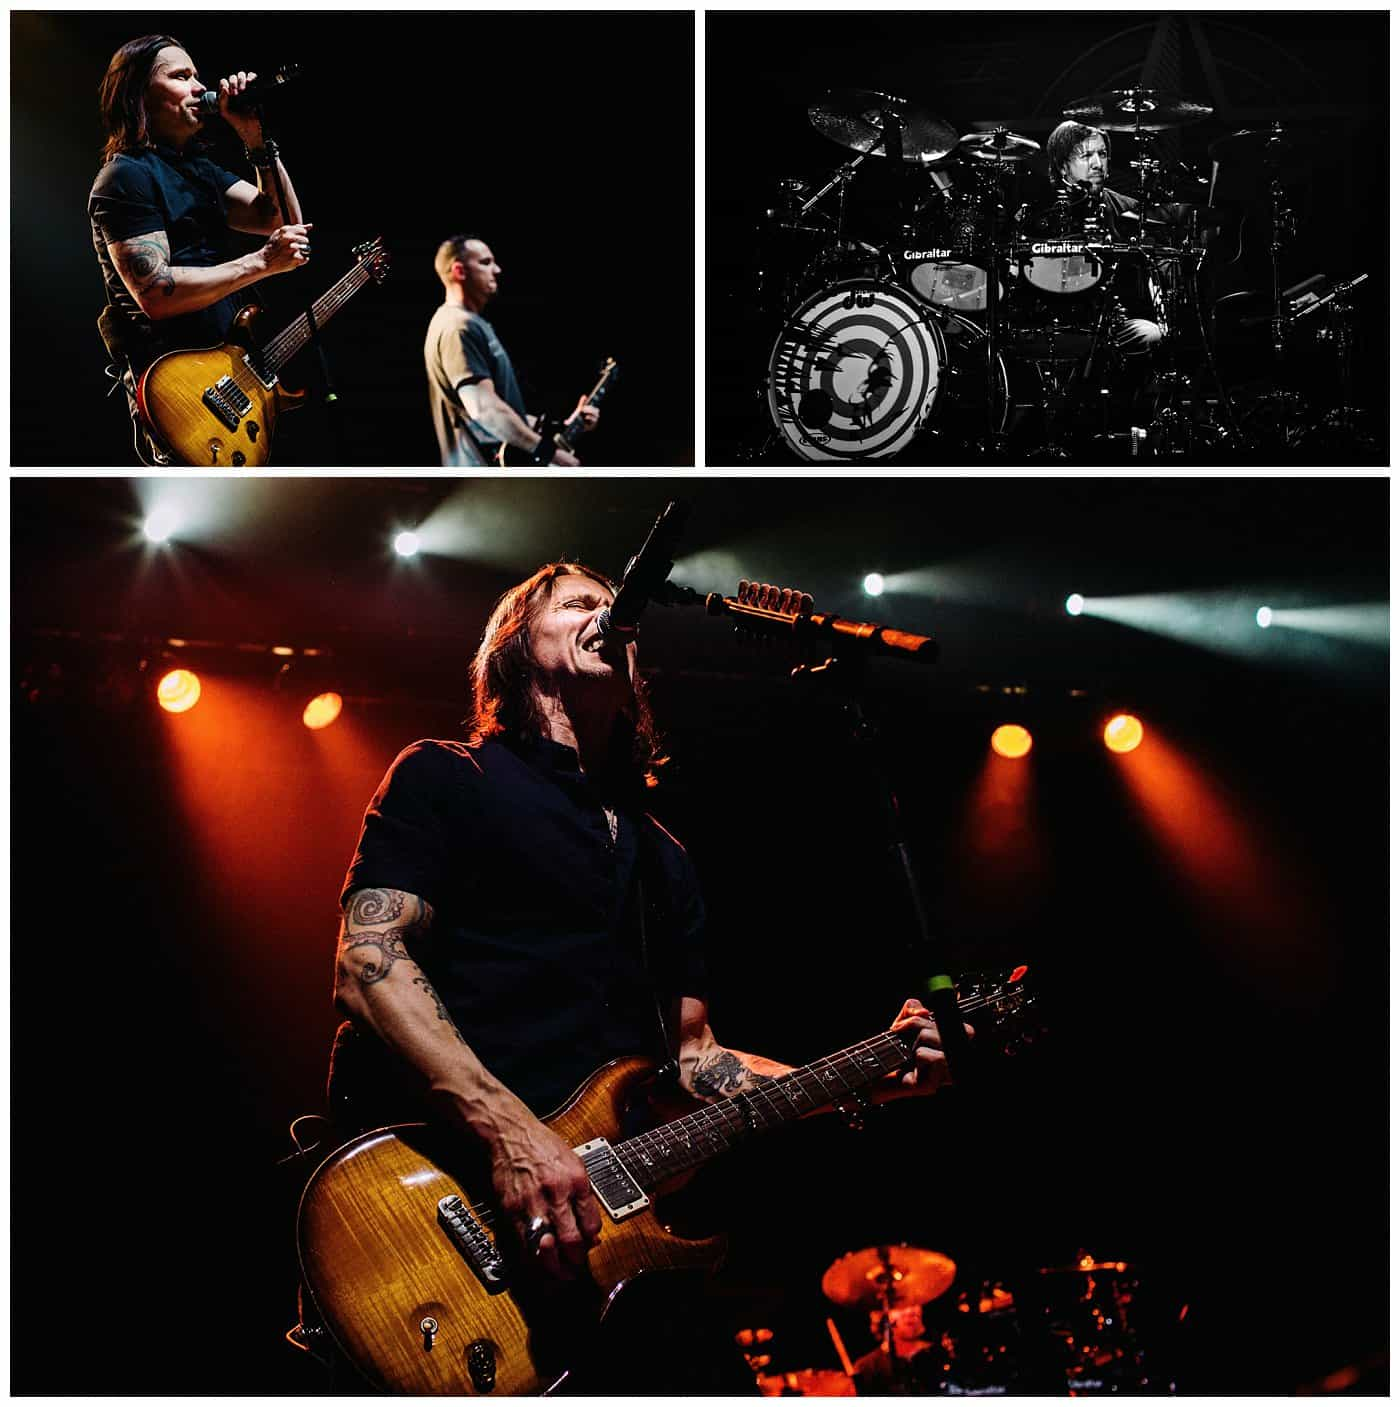 Photos of Alter Bridge in Montreal